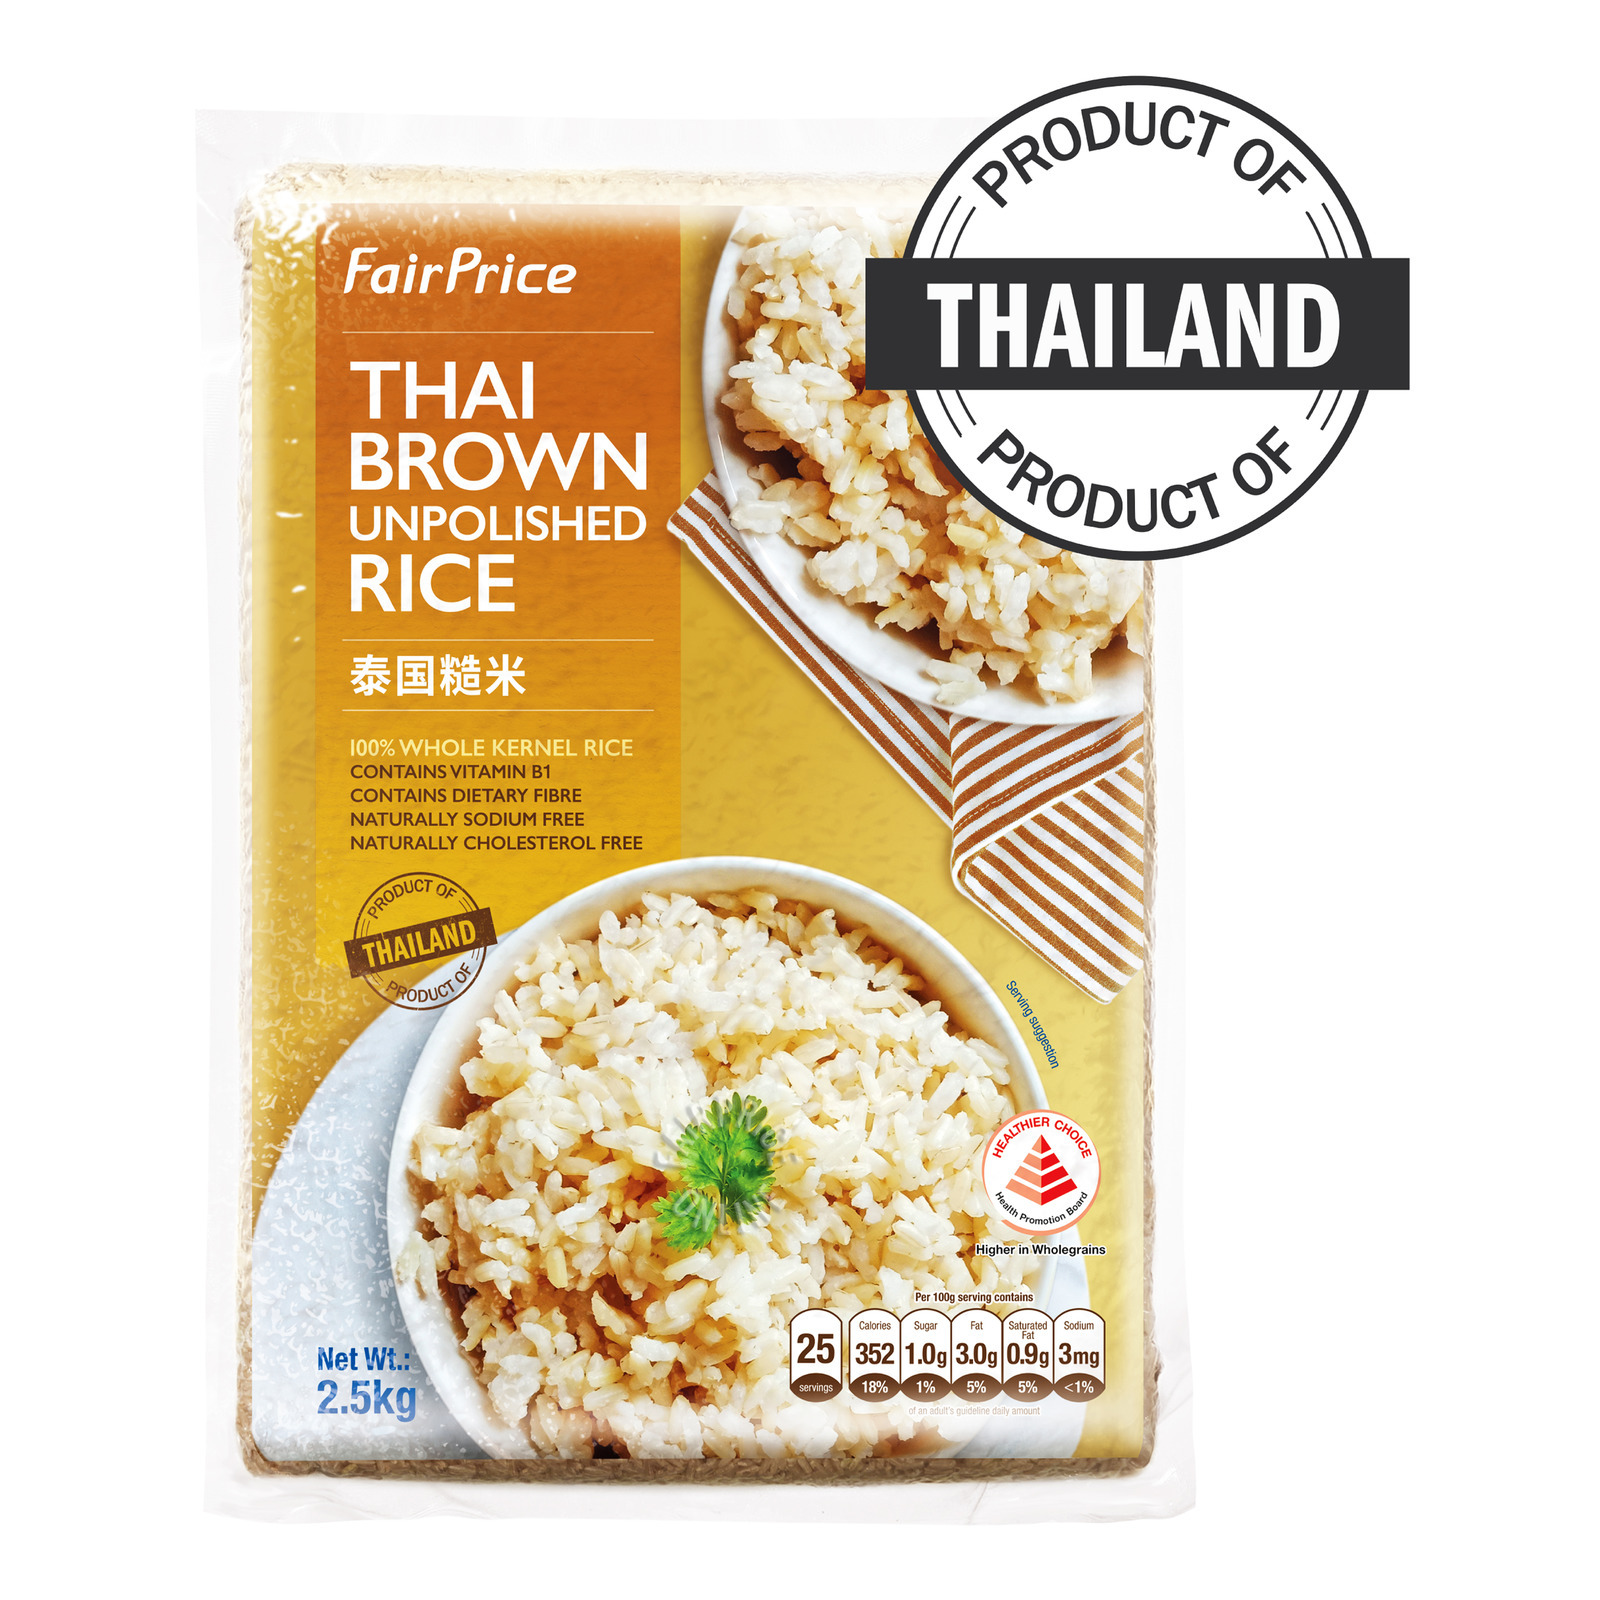 FairPrice Thailand Rice - Brown (Unpolished)